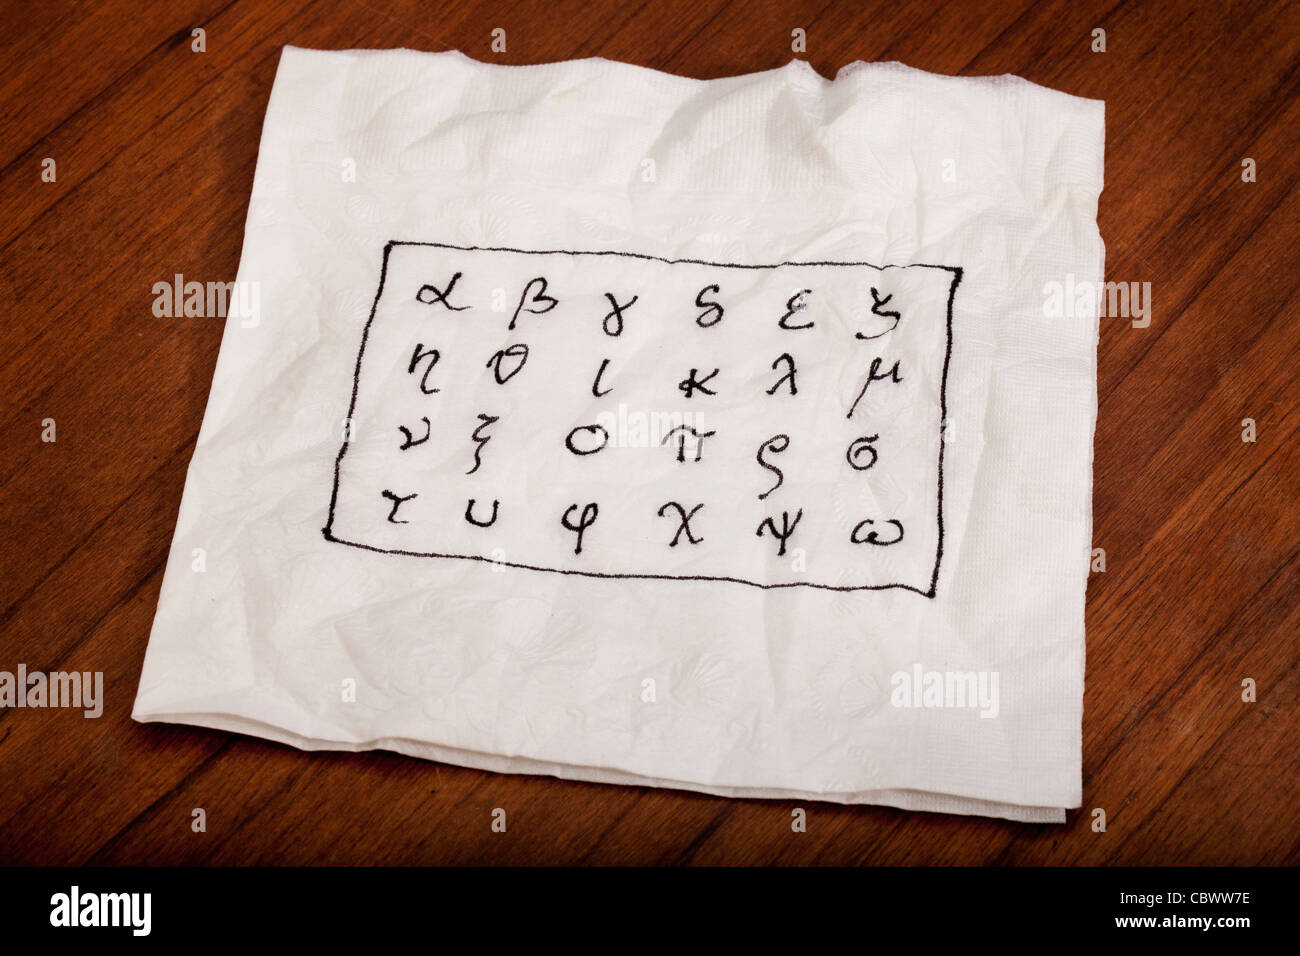 twenty four letters of Greek alphabet from alpha to omega (in lower case) handwritten on a white napkin - Stock Image